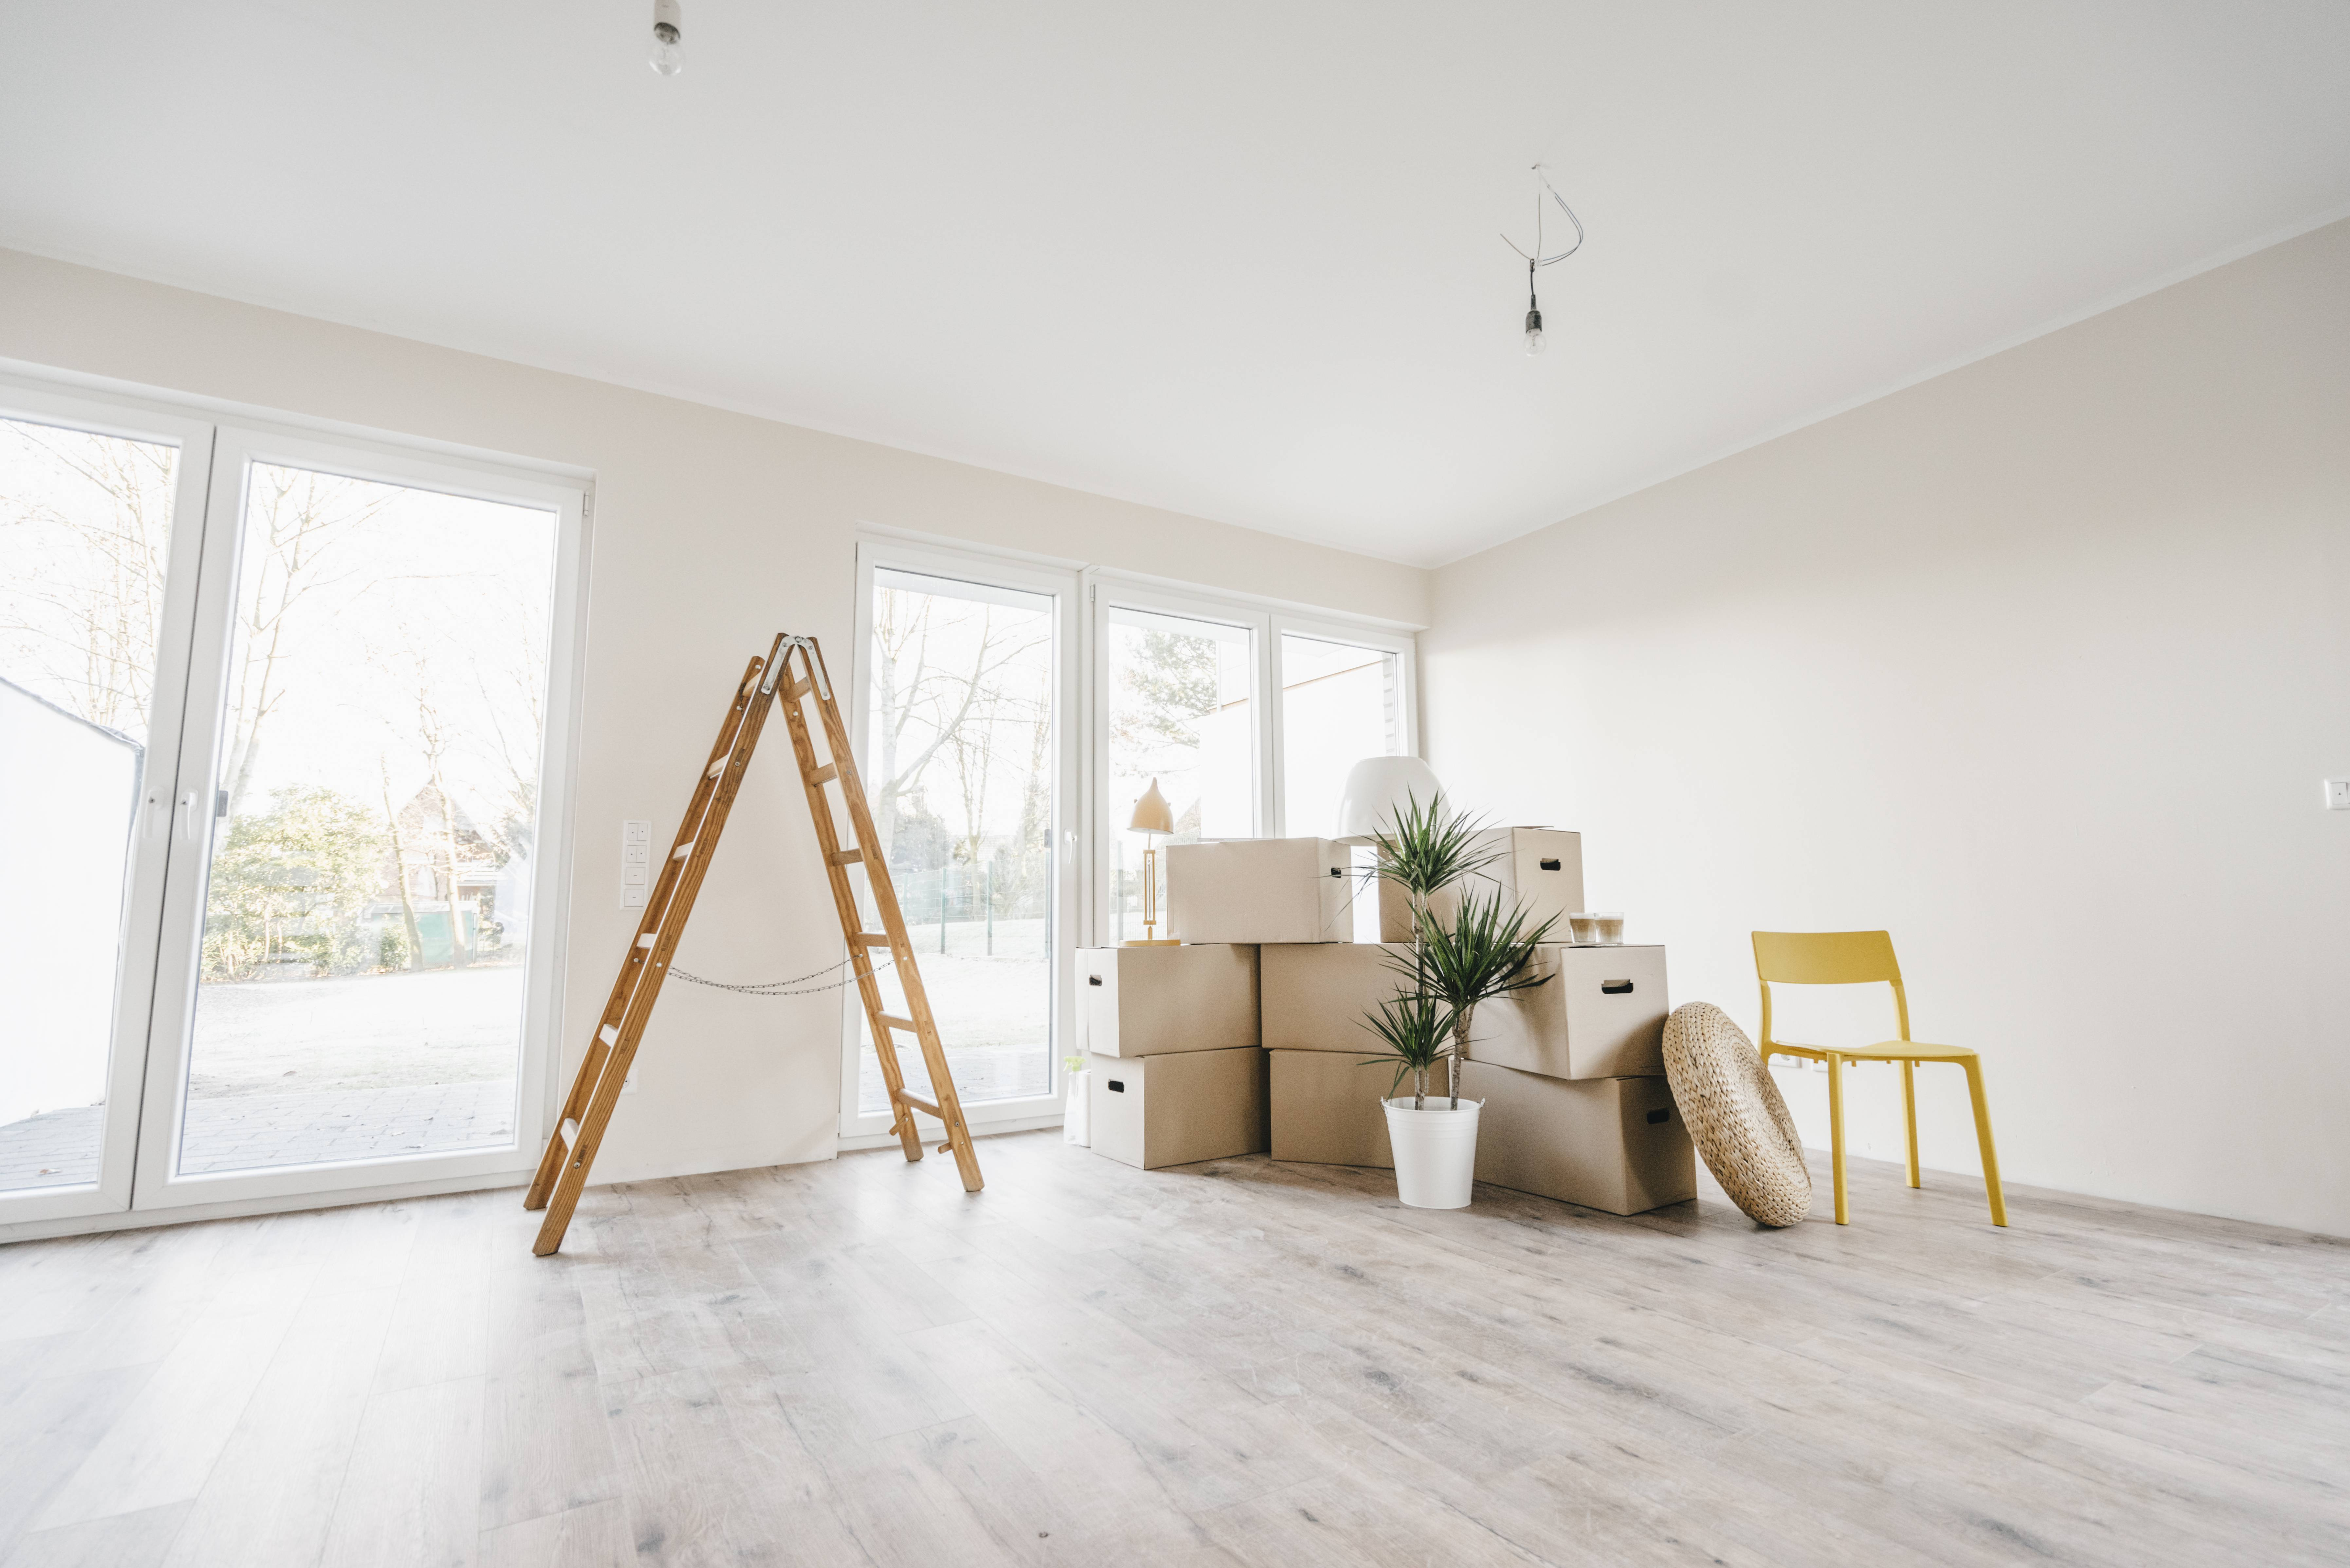 Moving boxes and ladder in empty room of a new home